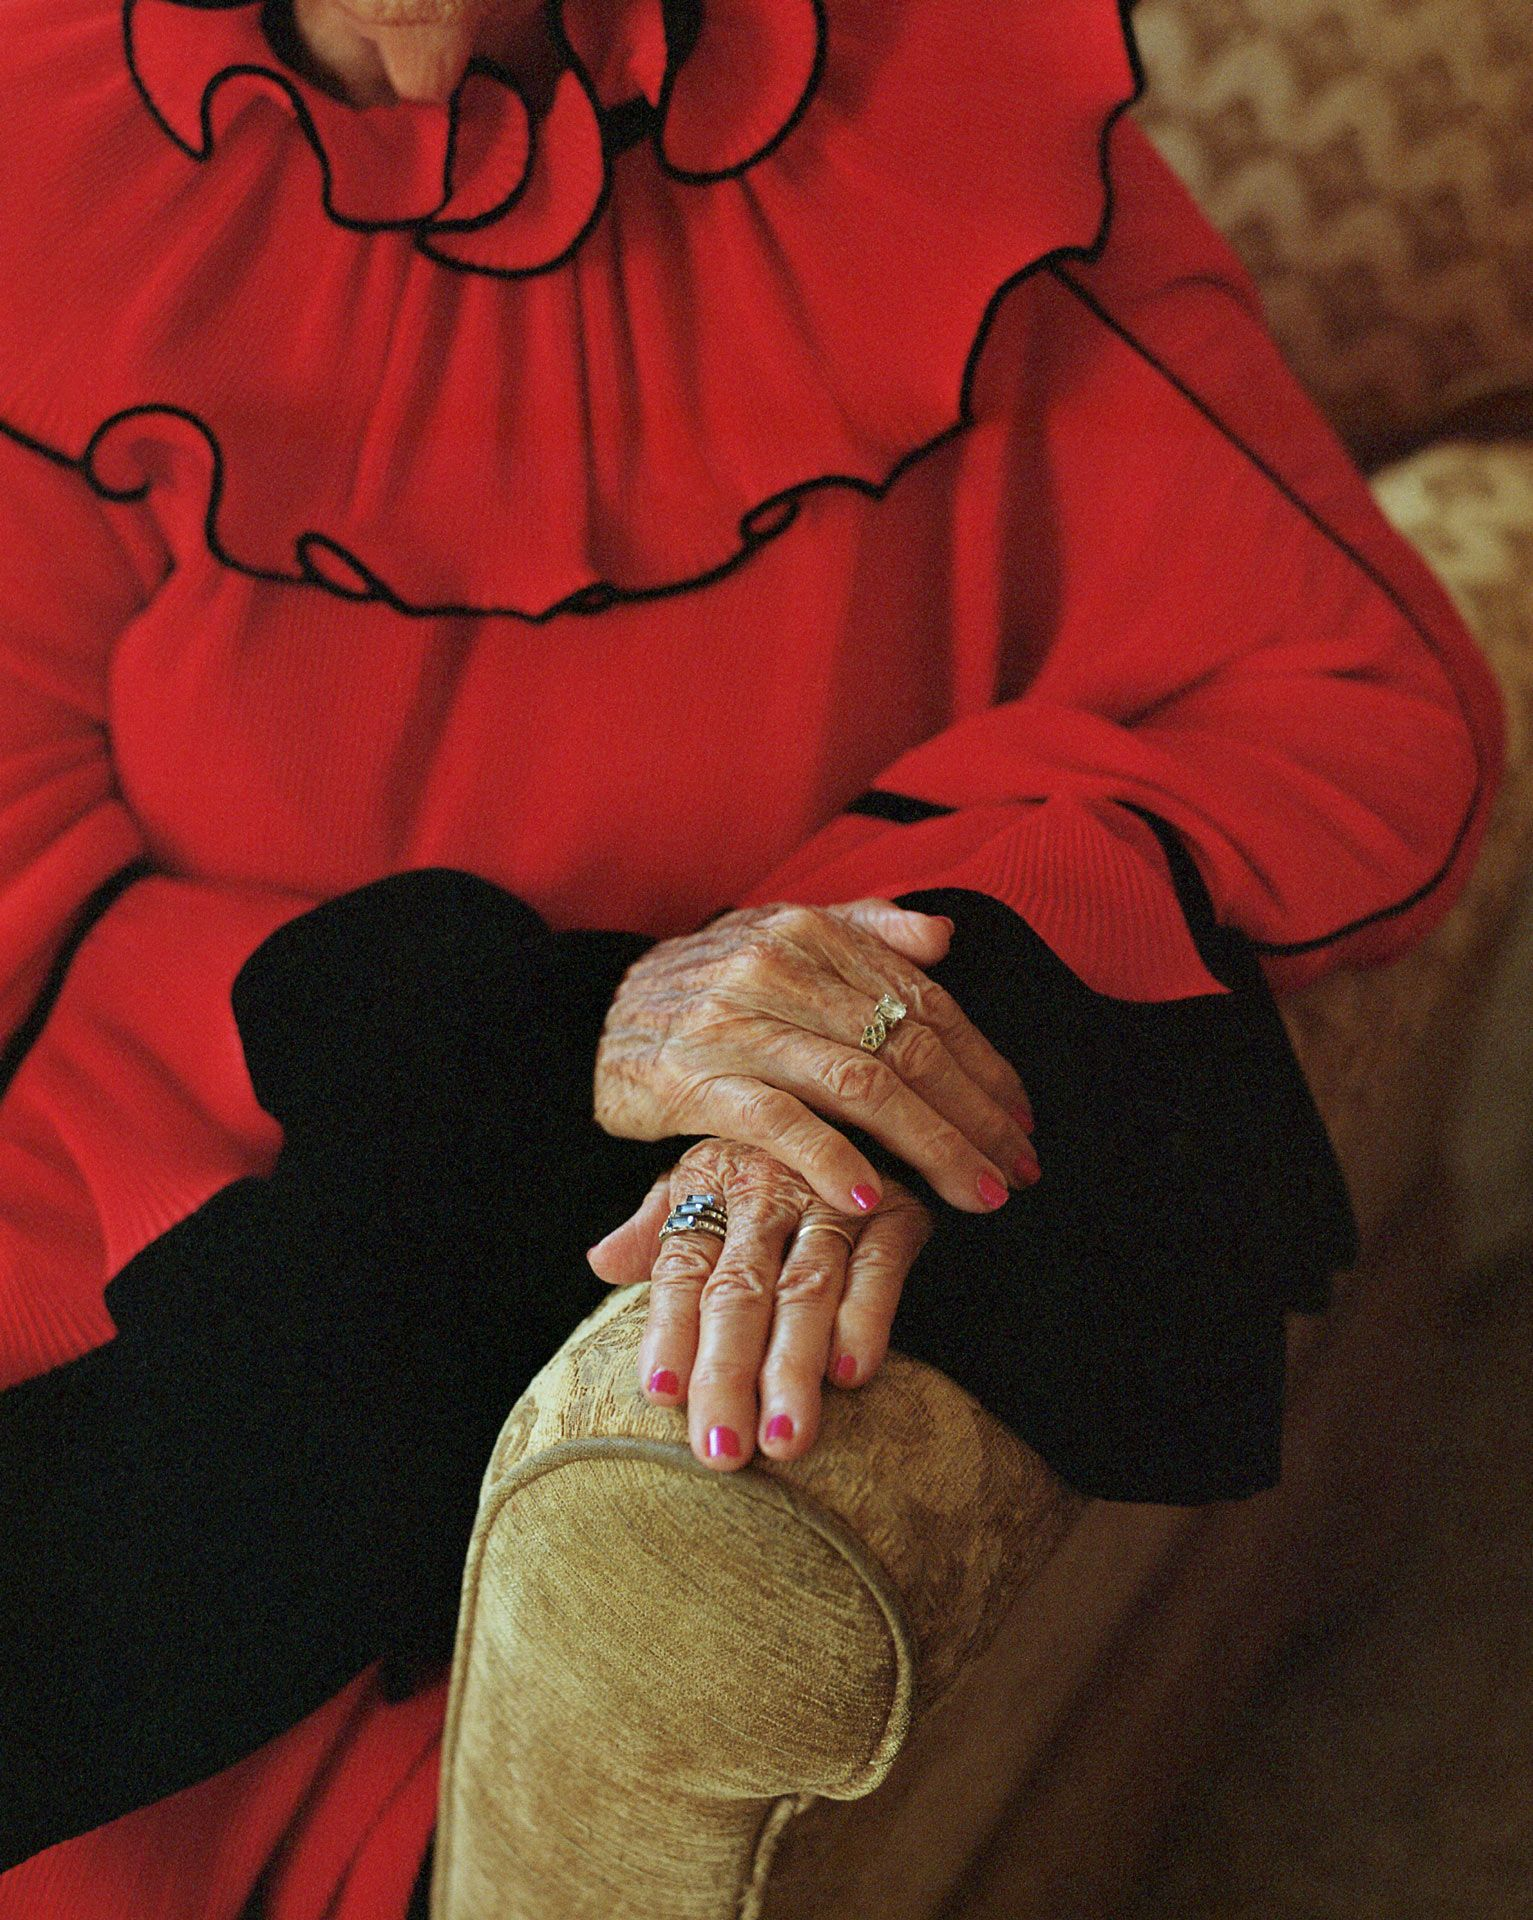 picture of Altagracia de Pena hands with a ring wearing a red dress by Oumayma B. Tanfous for Phosphenes Magazine